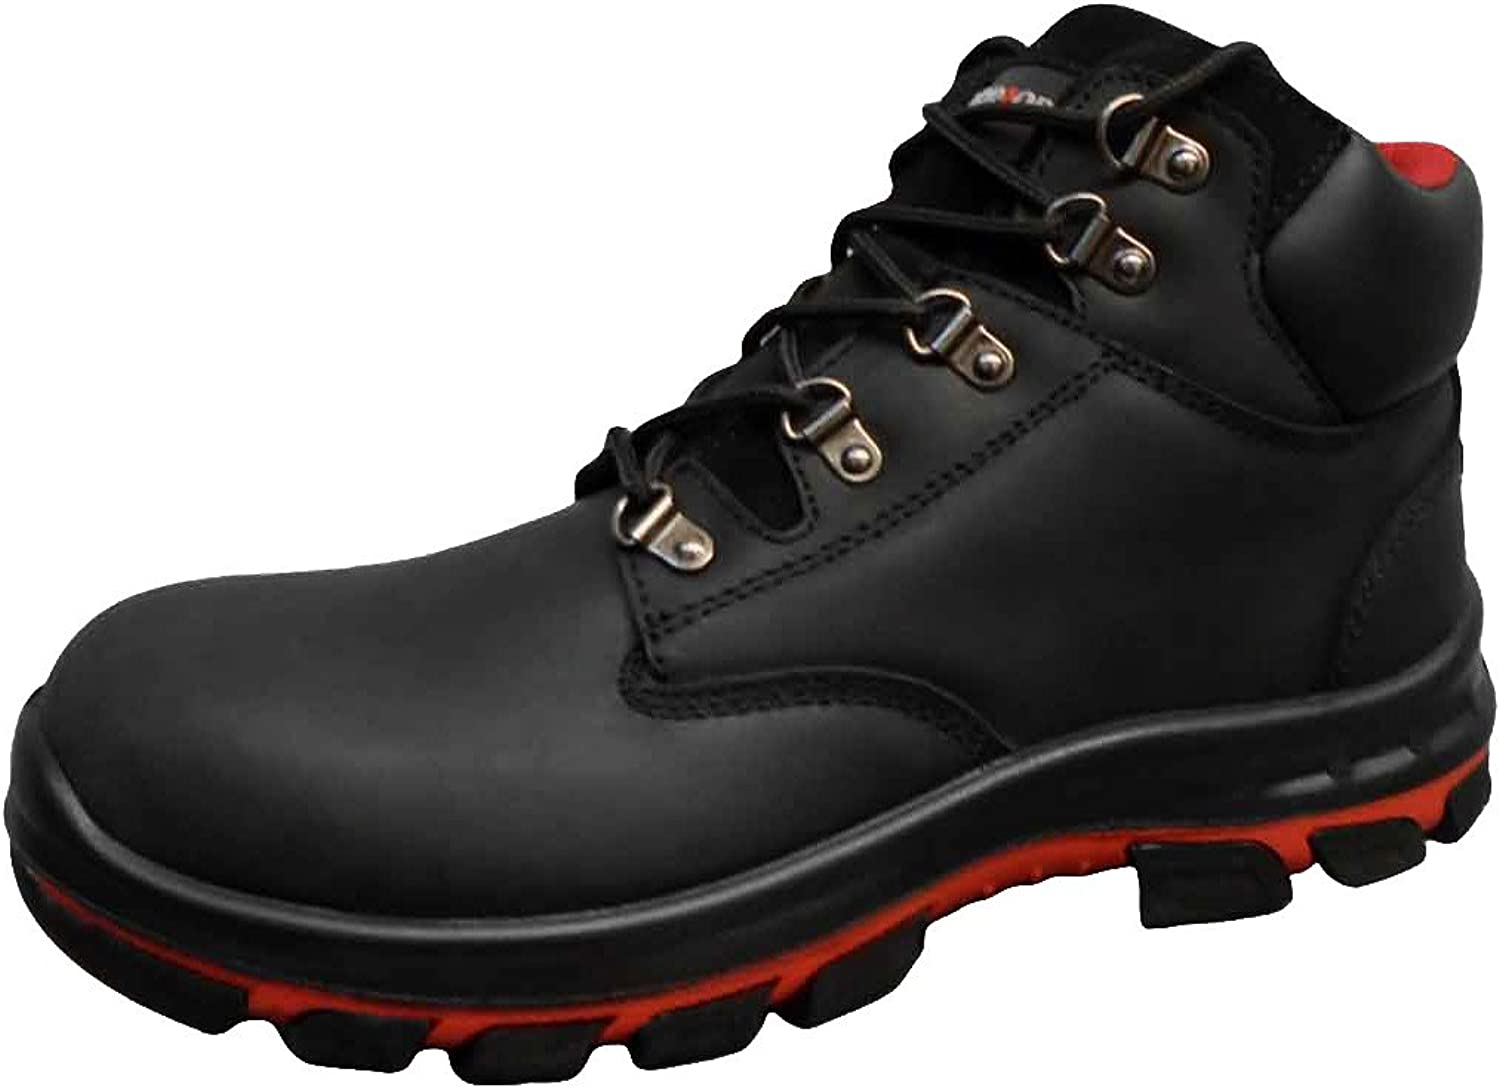 Warrior Workwear 0118MMB45 5 Waxy Full Grain Boot, Size 5, Black